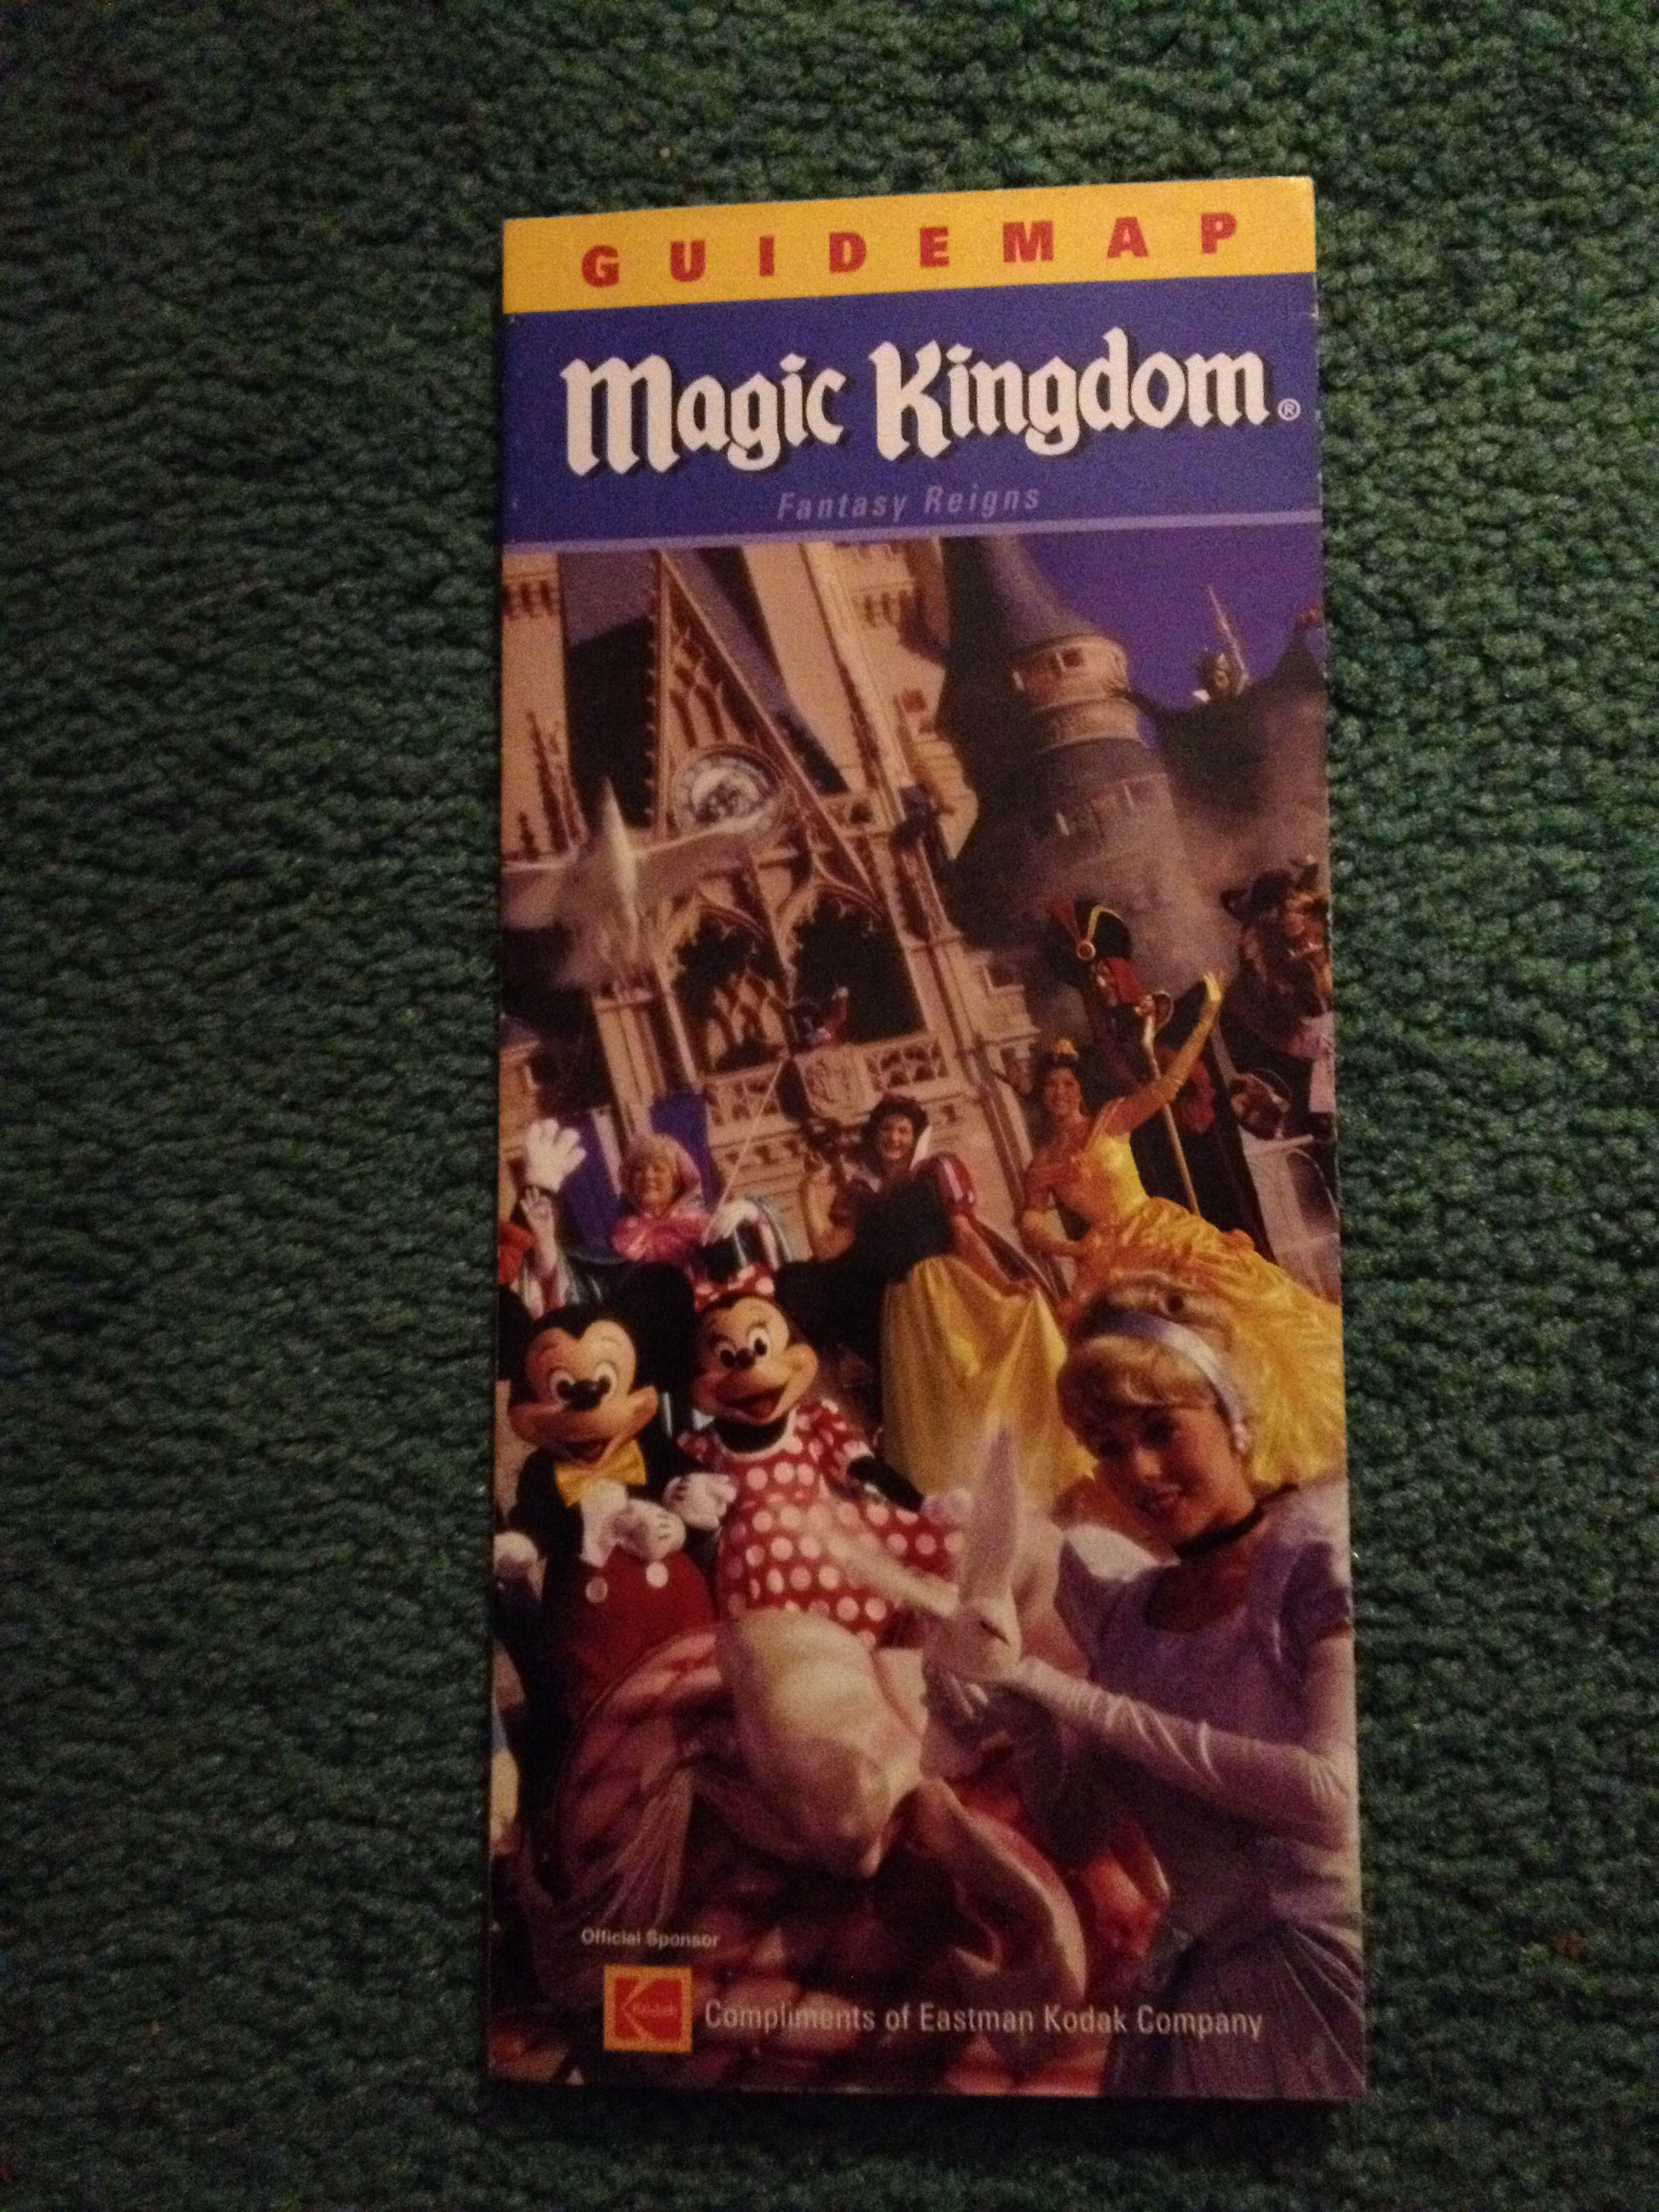 Wdw magic kingdom 2003 guide map Wdw